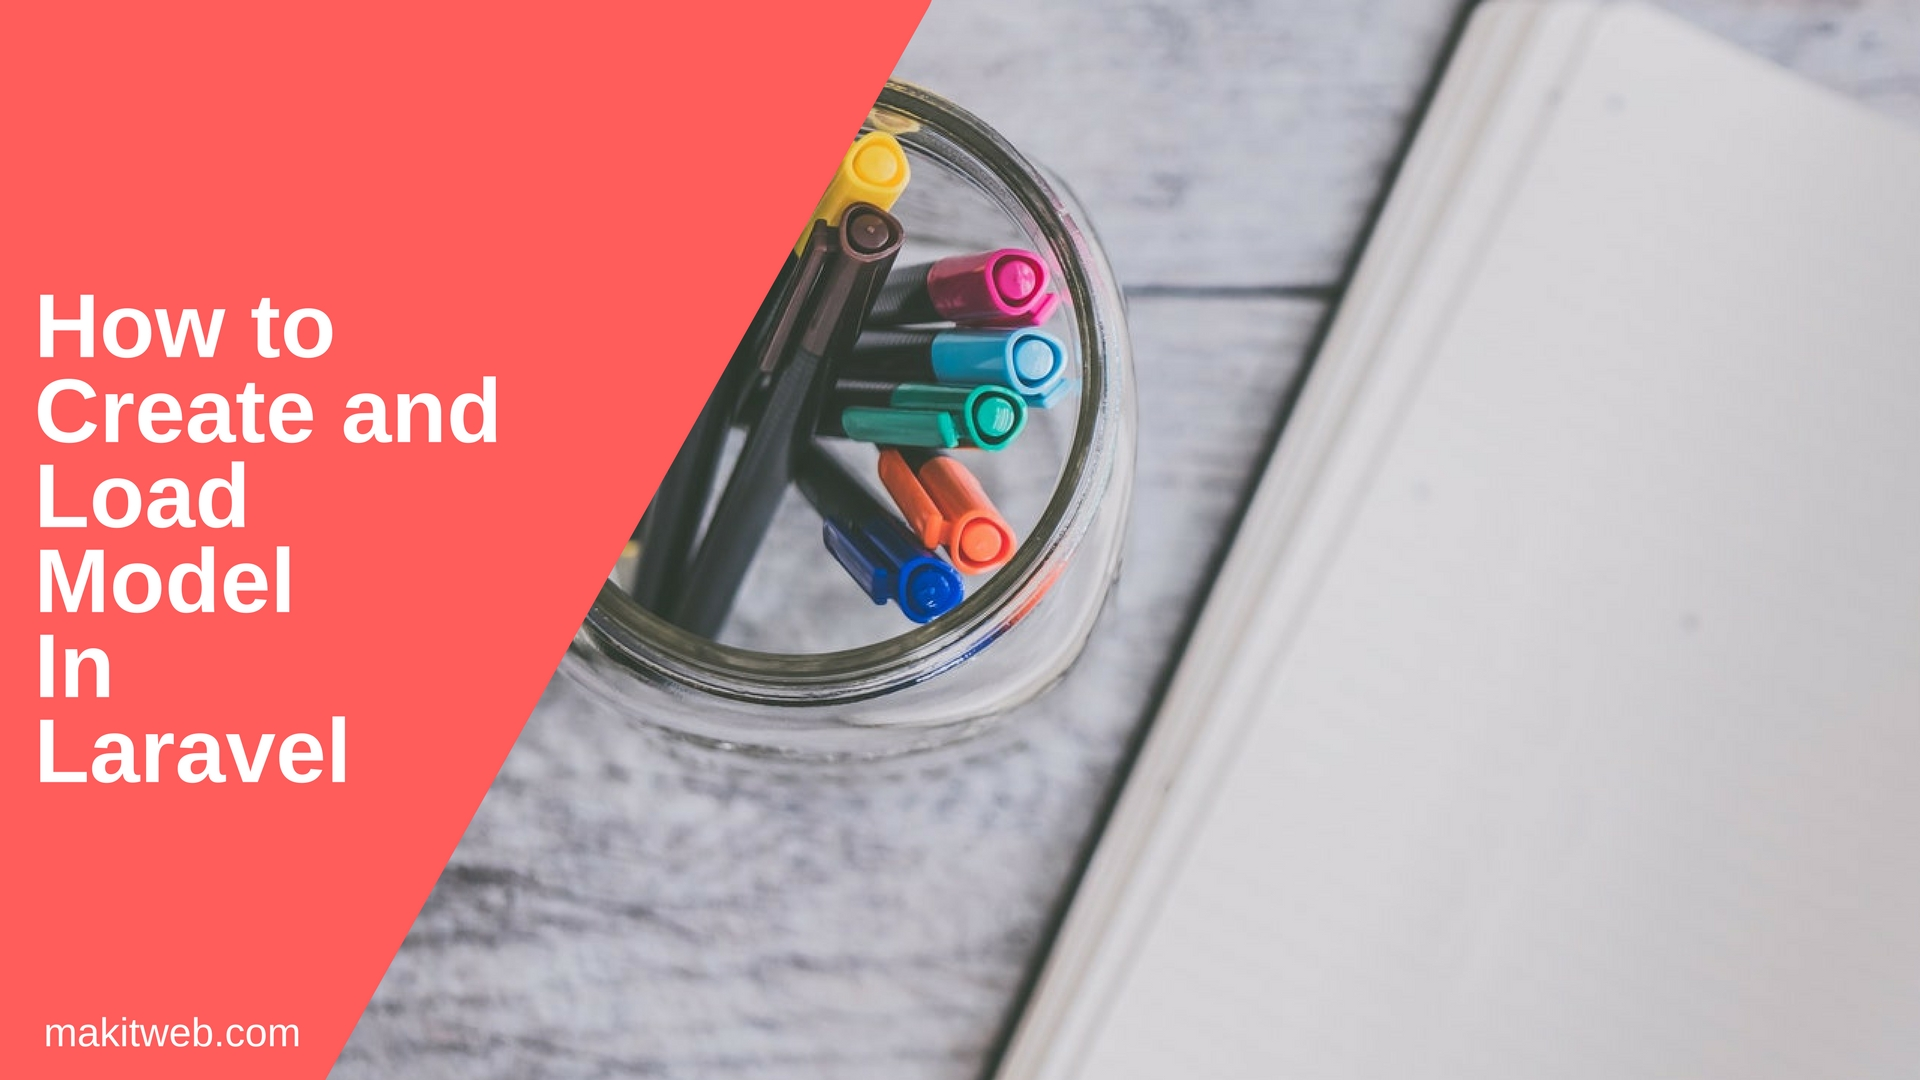 How to create and load Model in Laravel